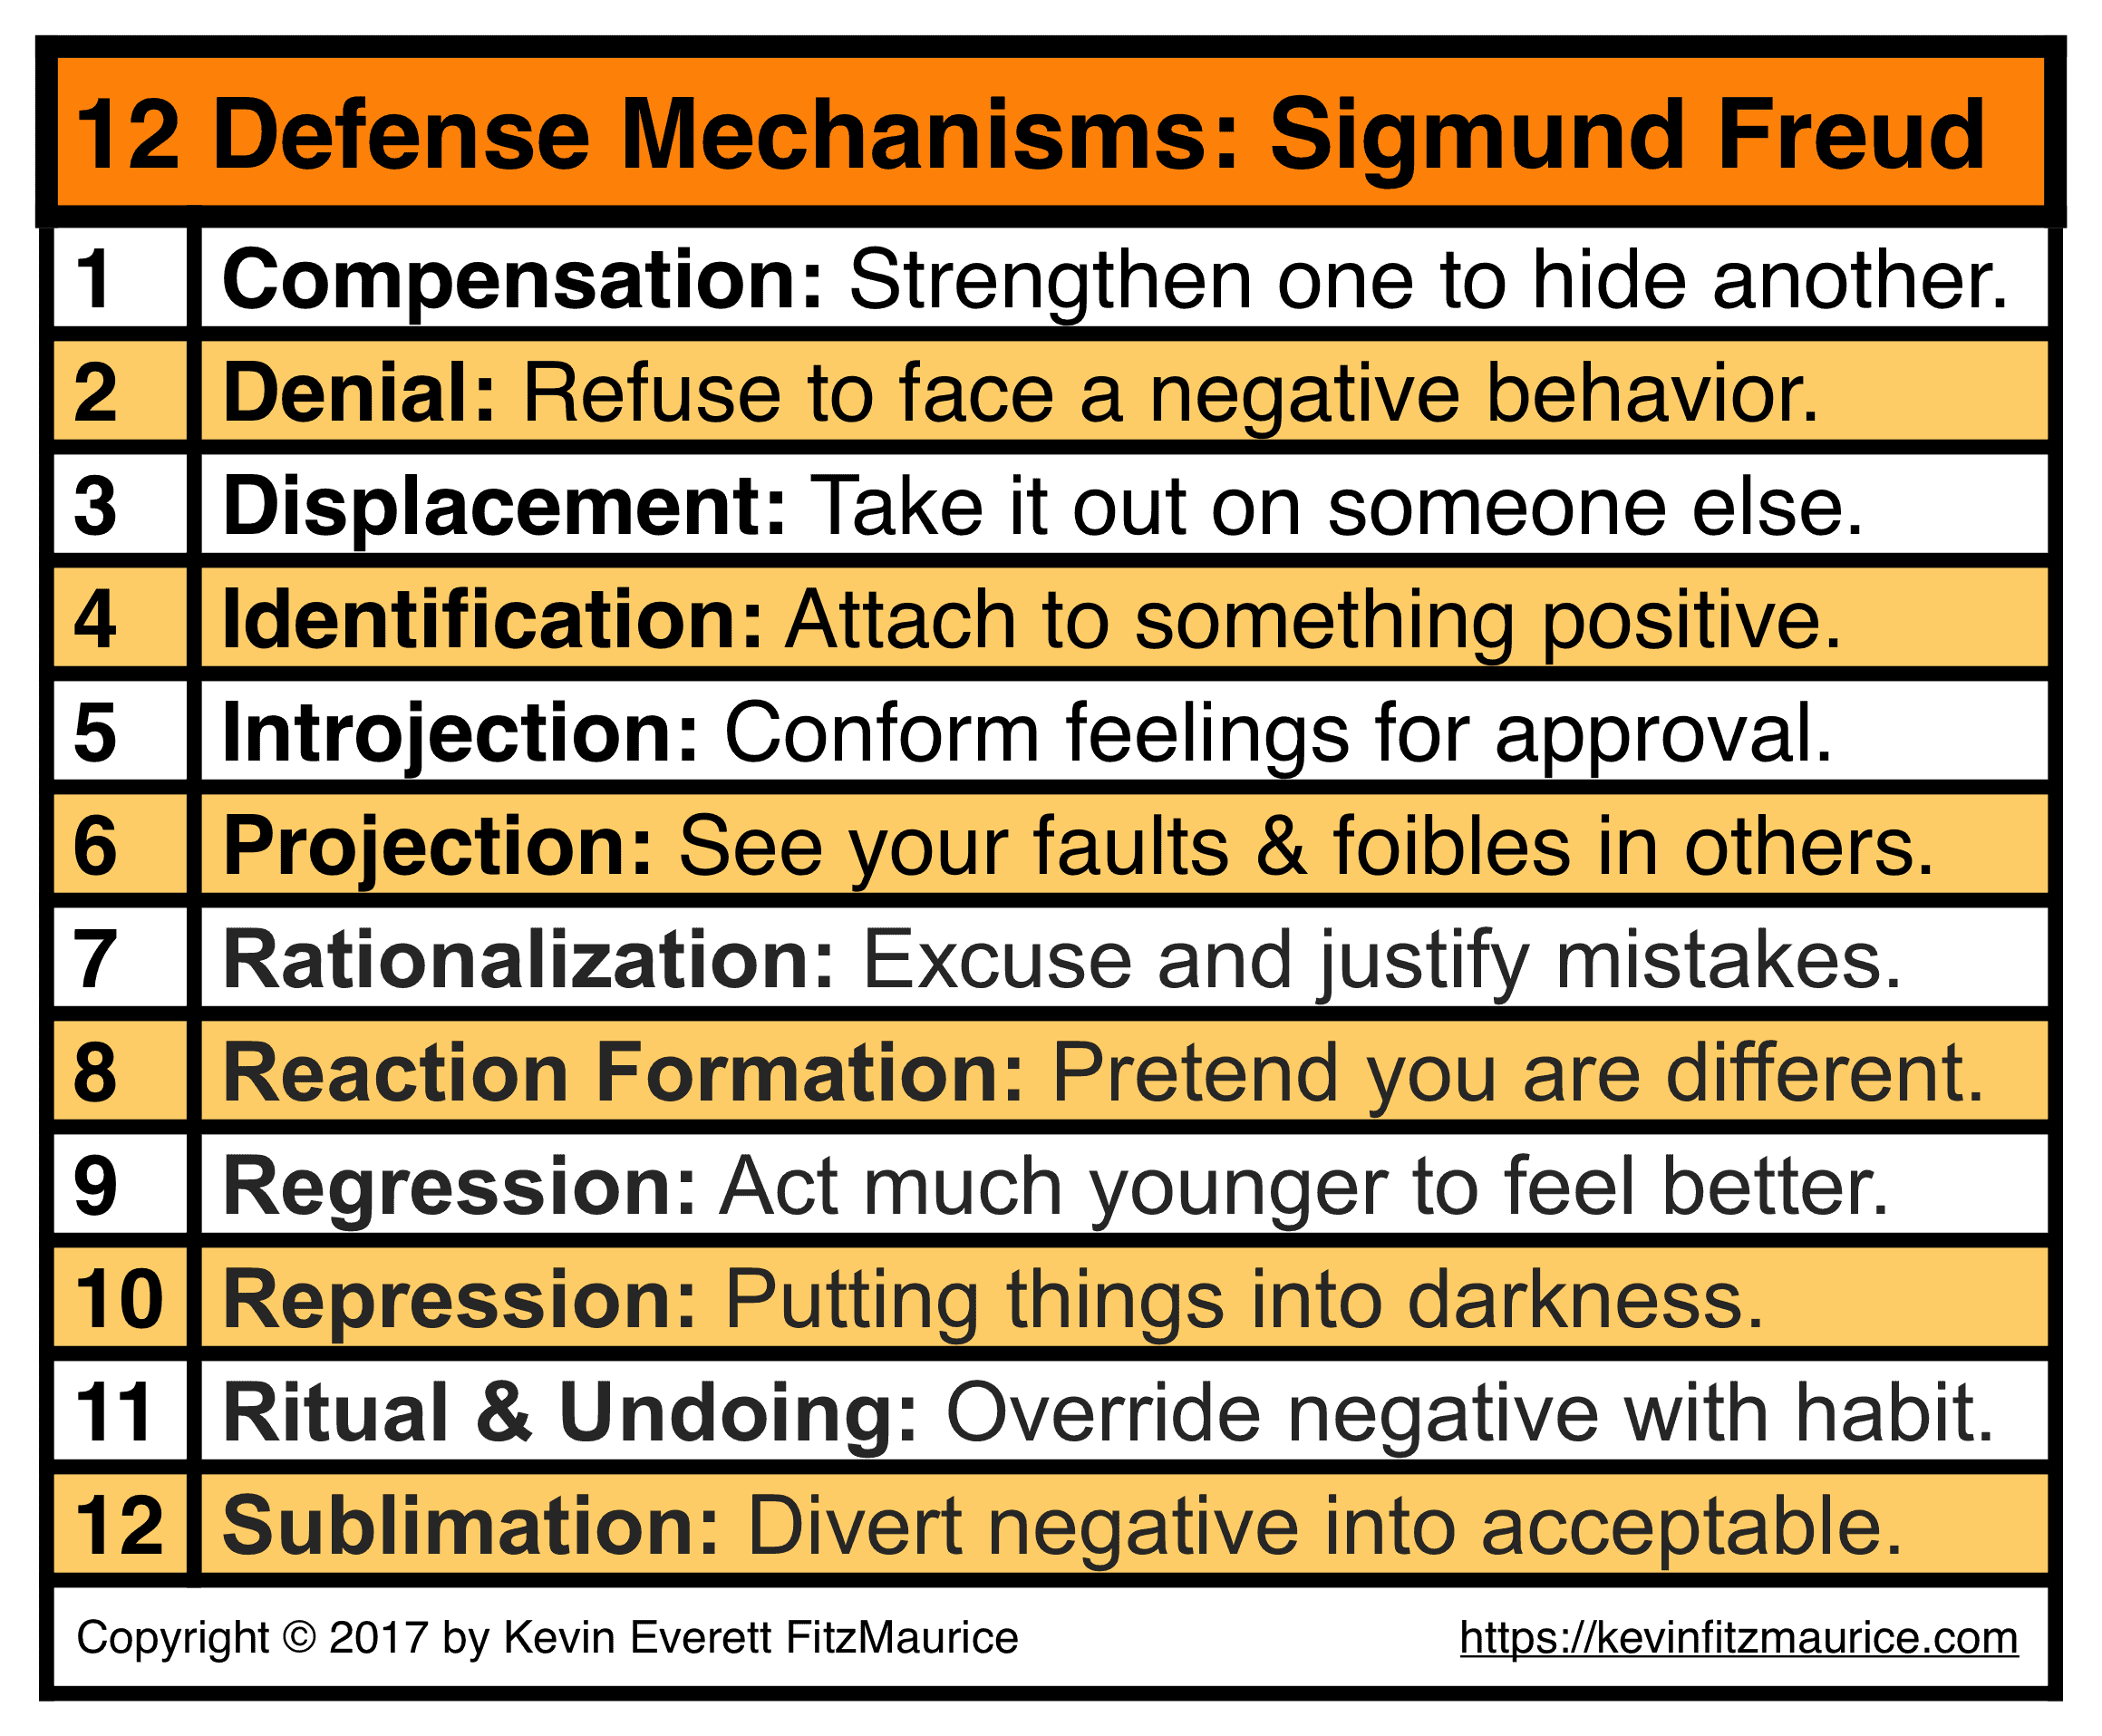 Sigmund freud 12 defense mechanisms self esteem issues sigmund freud 12 ego defense mechanisms altavistaventures Choice Image